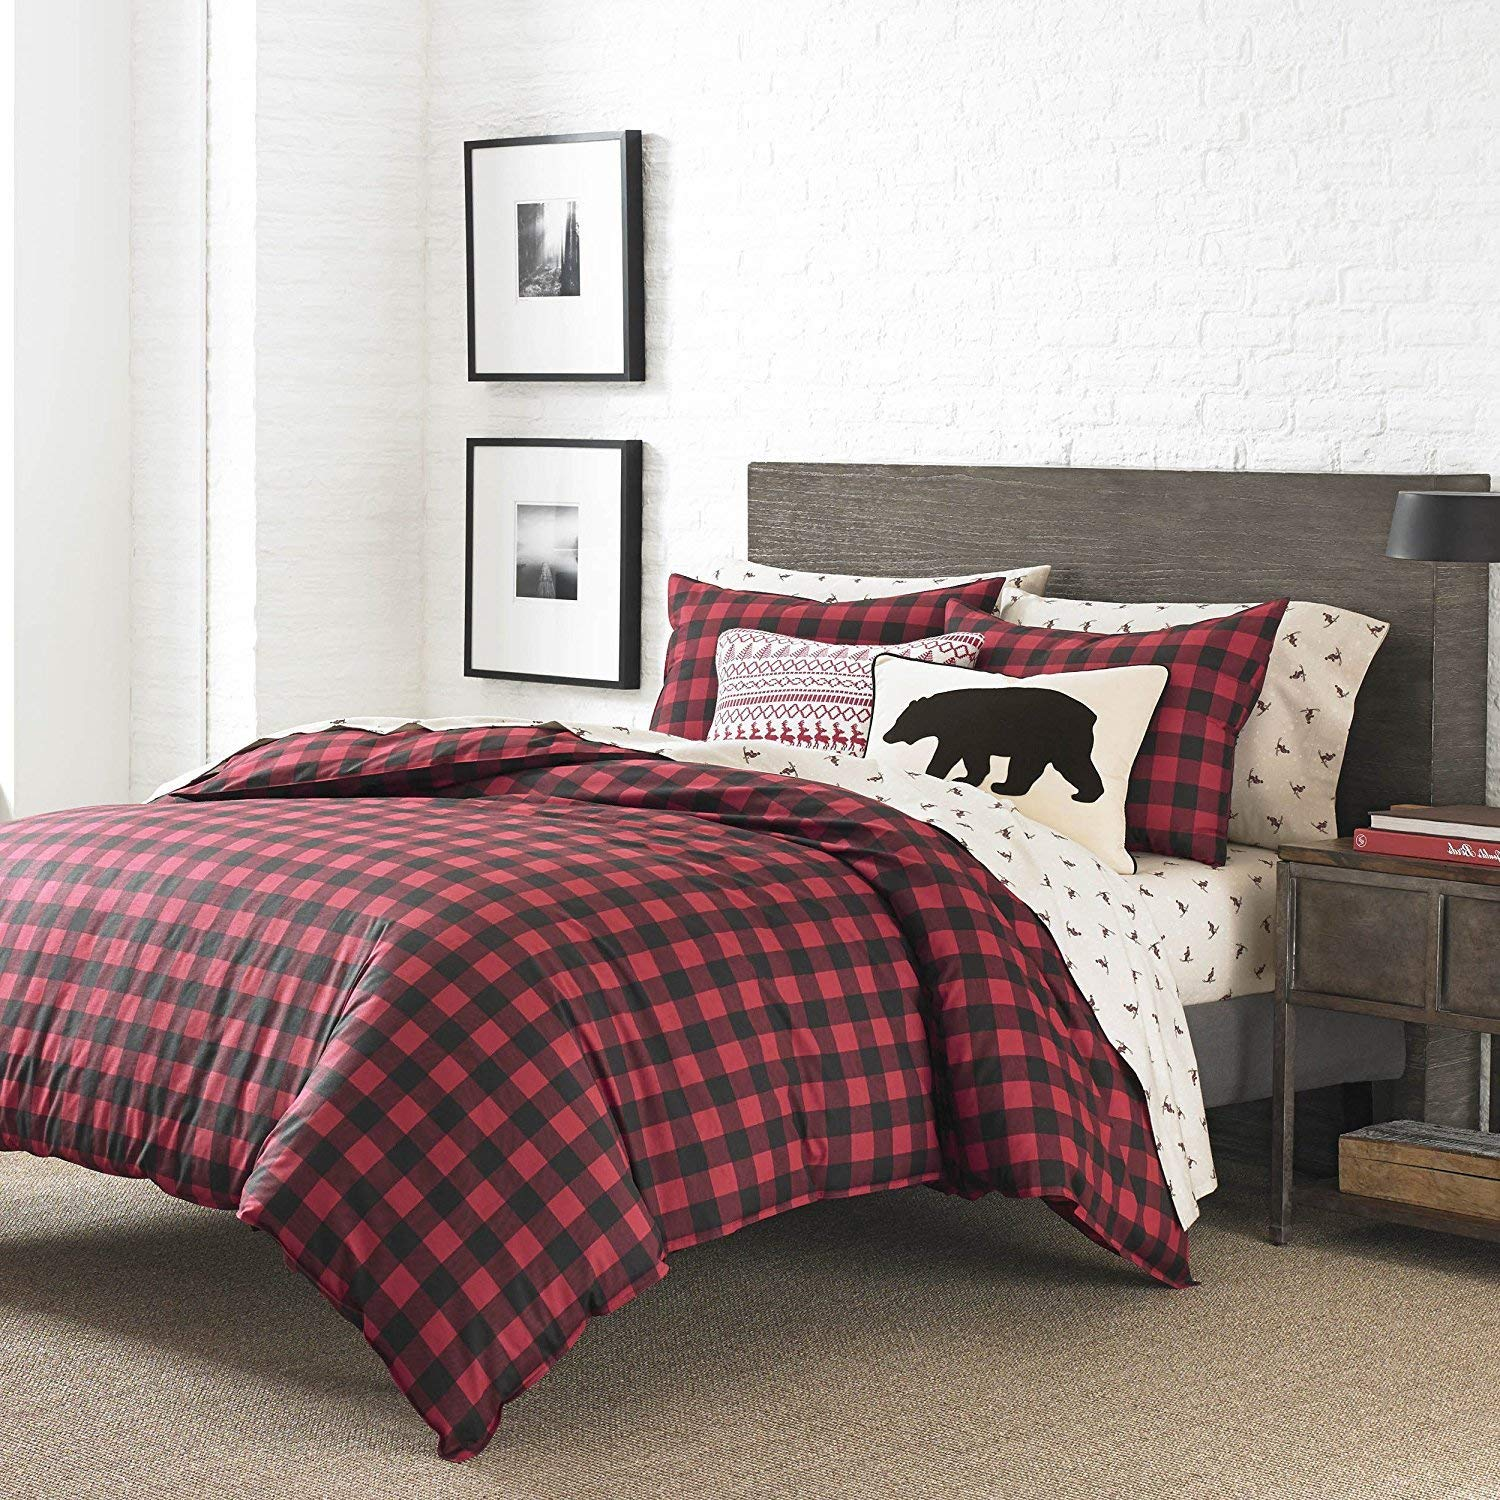 OSD 3pc Black Red Plaid Comforter Full Queen Set, Cabin Themed Bedding Checked Lumberjack Pattern Lodge Southwest Tartan Madras Crisscross Squares Hunting, Percale Cotton